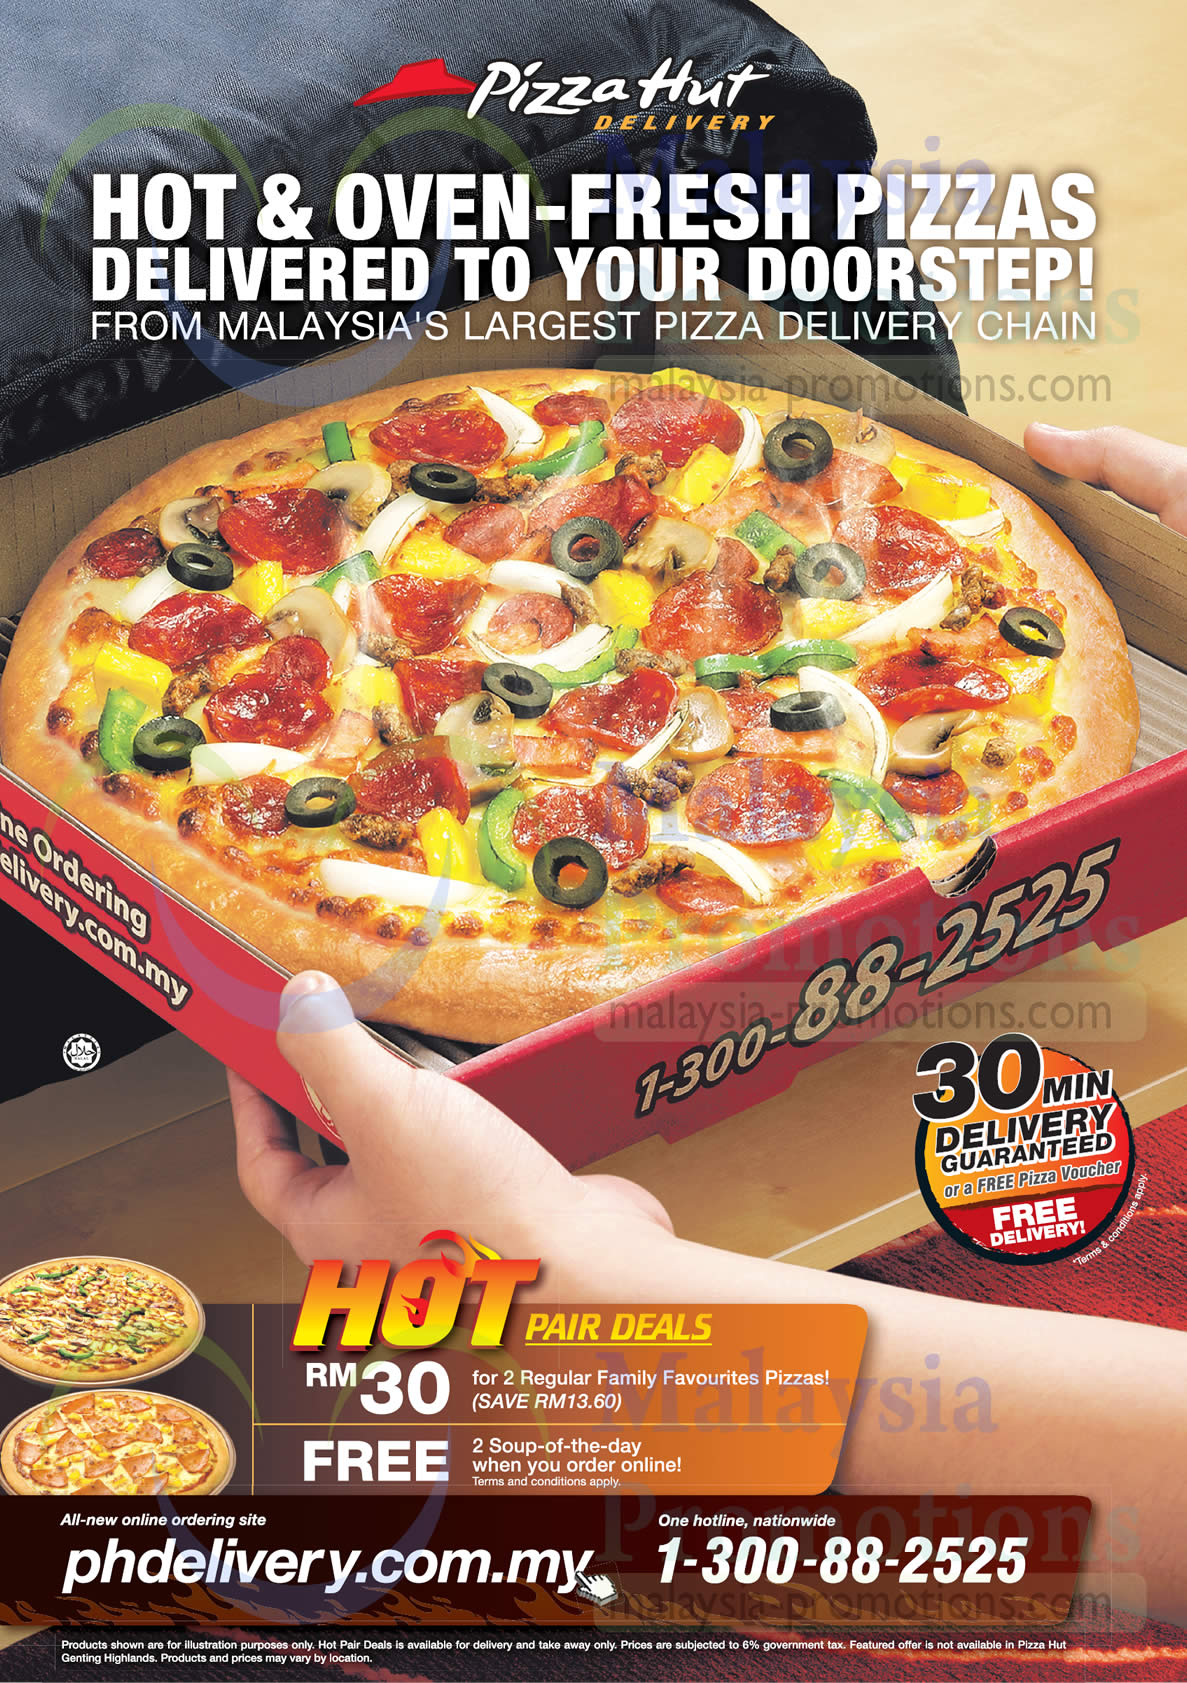 Aug 30, · I like pizza hut, but i get stuck in the dilemma where my local pizza hut barely puts any toppings on the pizza when they run this promo. Thus Pizza Hut is super expensive, or when they have a sale, the pizza is mediocre because the local franchise skimped out on toppings.